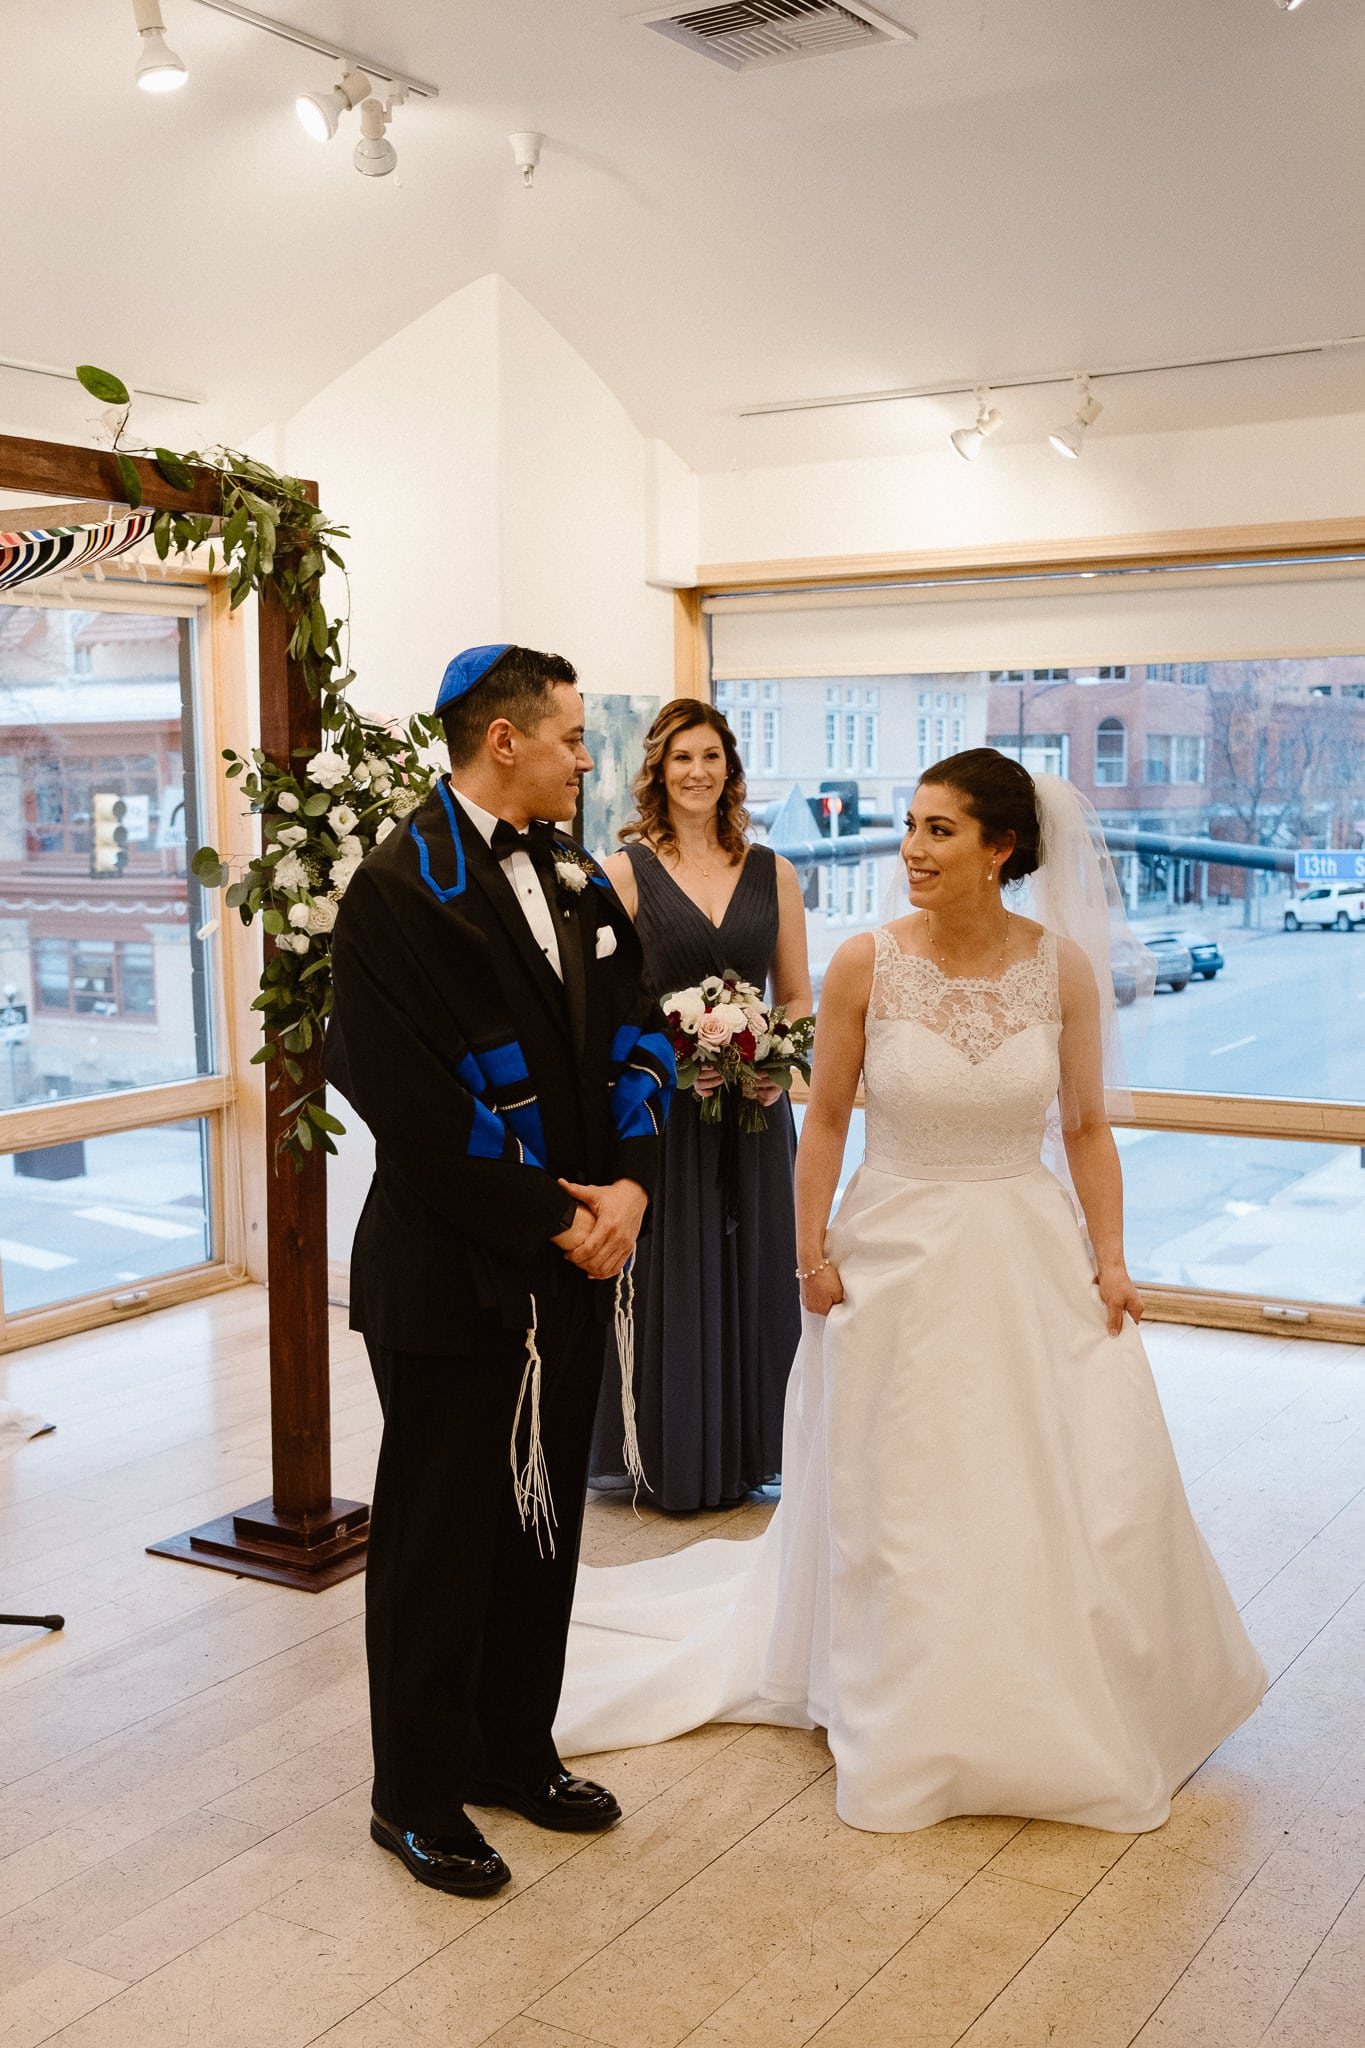 Rembrandt Yard wedding photographer, Boulder wedding photographer, Colorado Jewish wedding ceremony, bride circling the groom